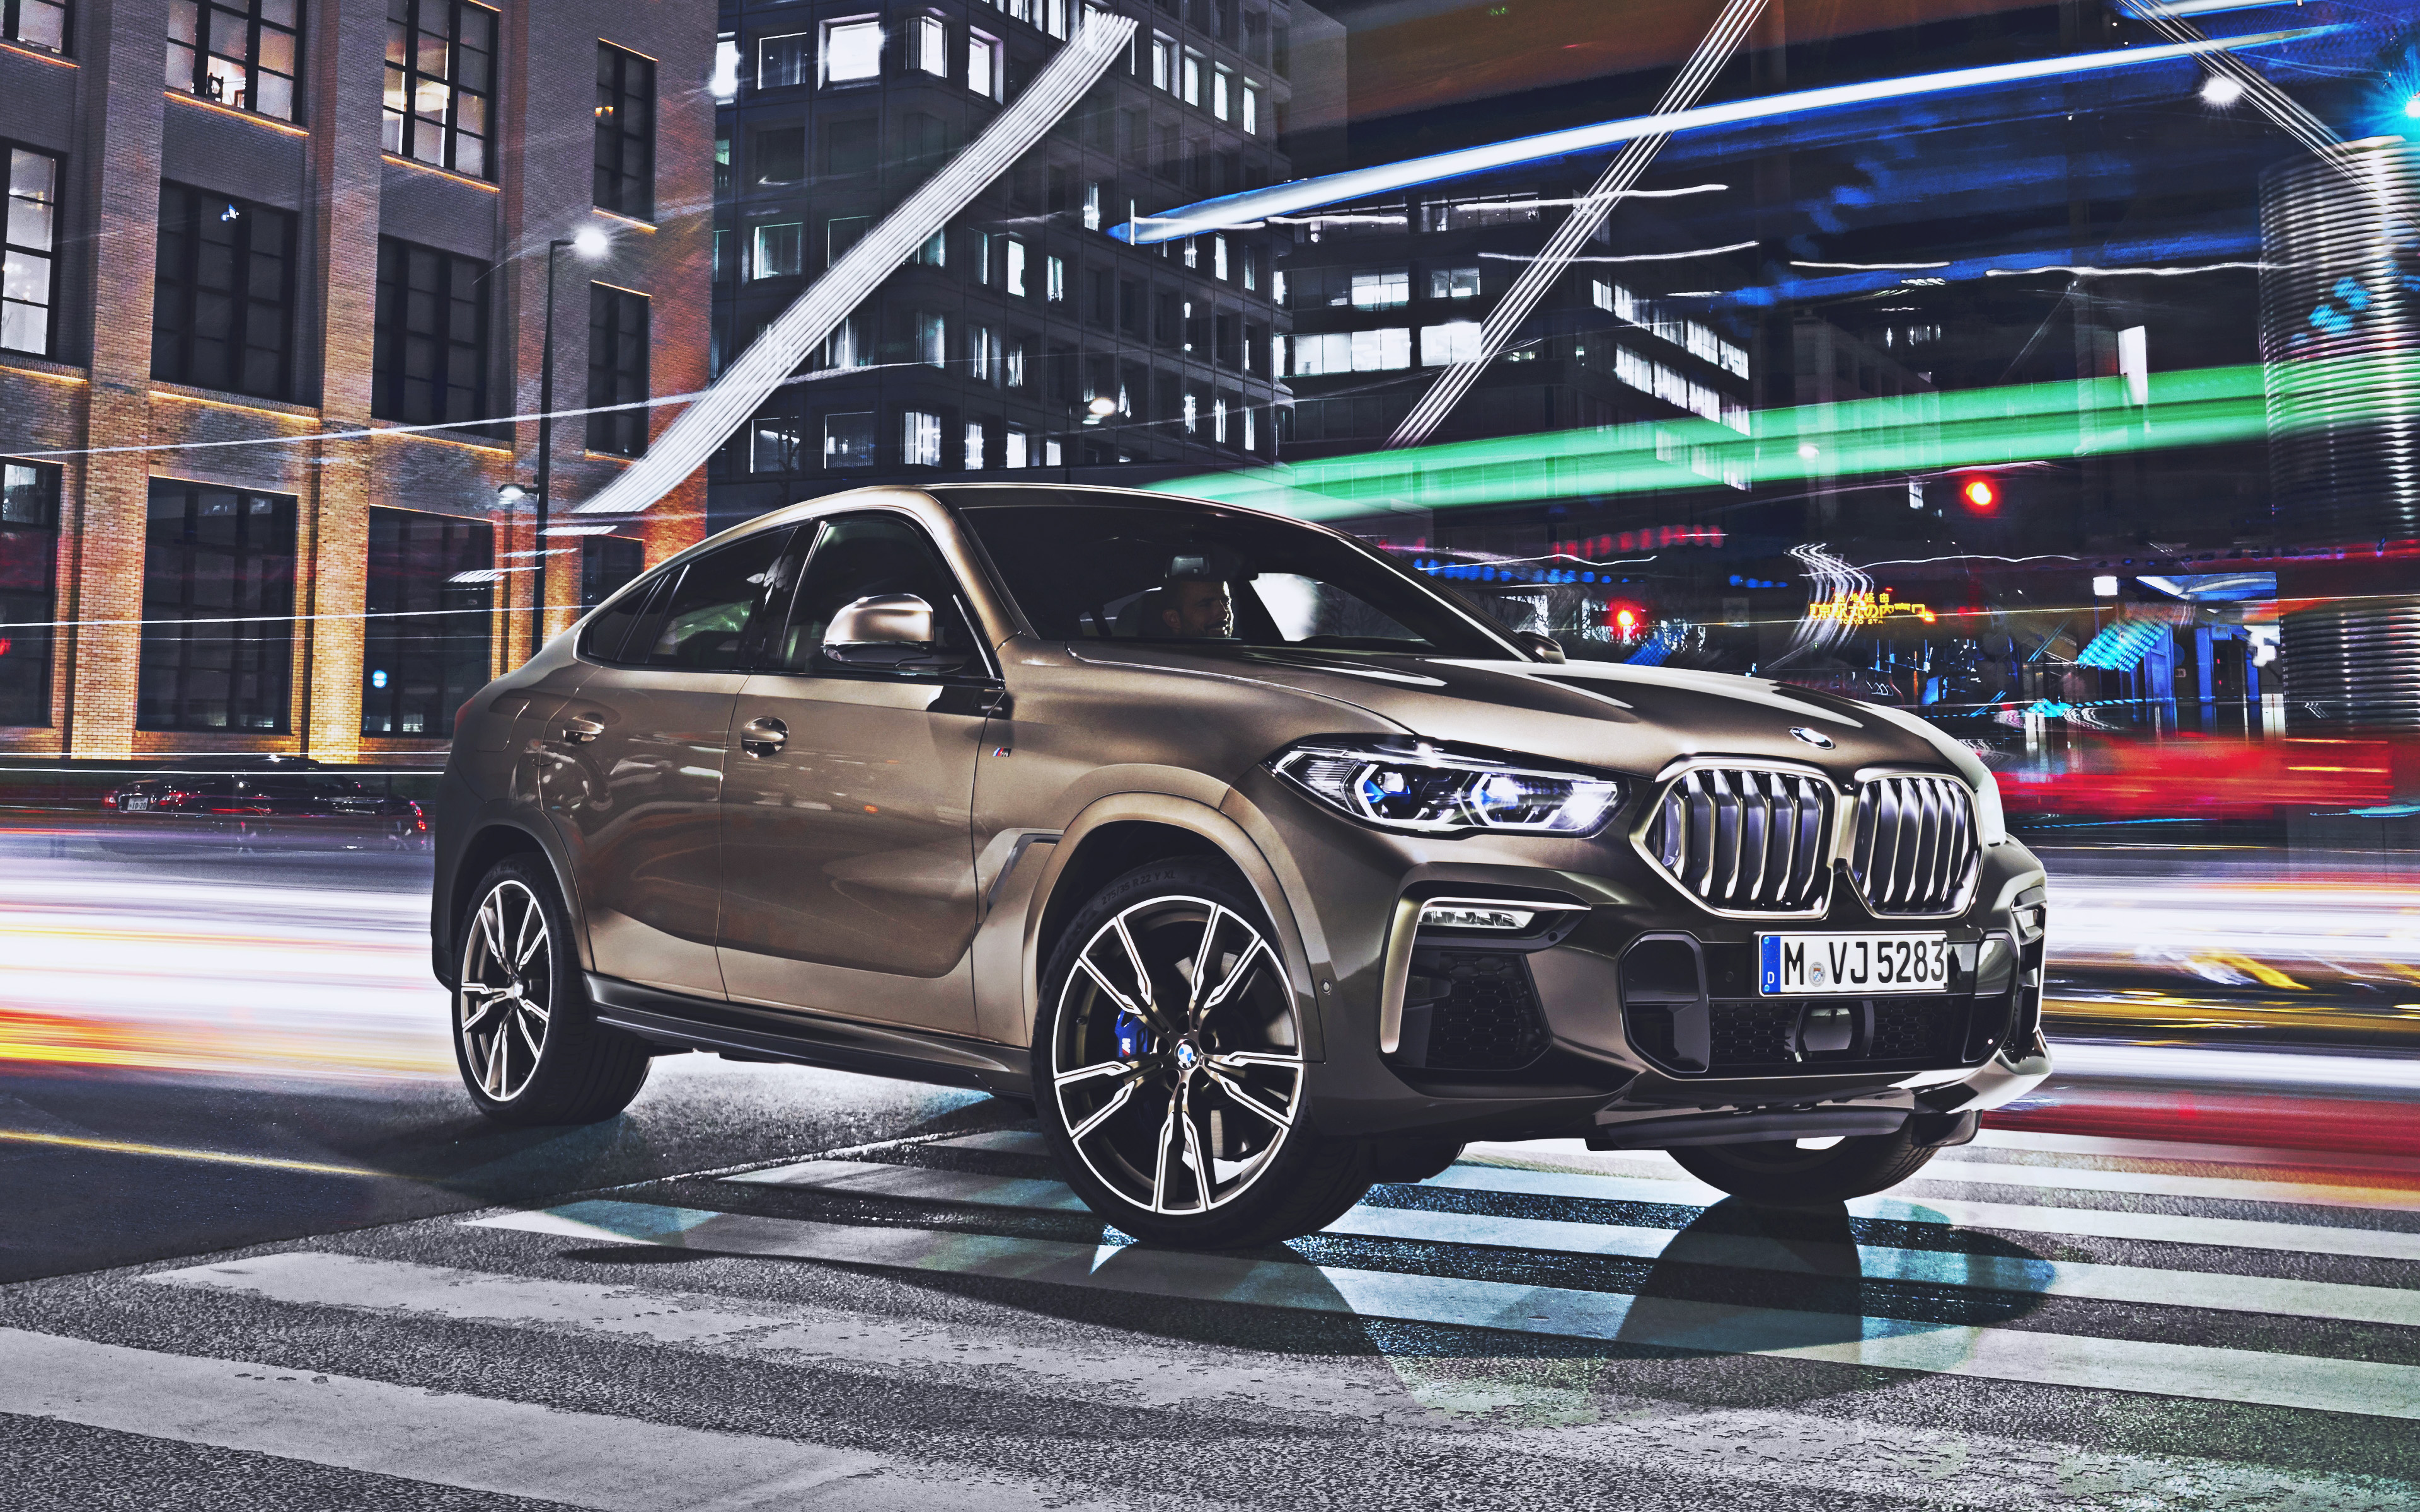 4k, BMW X6, street, 2019 cars, G06, luxury cars, 2019 BMW X6, german cars, New X6, BMW